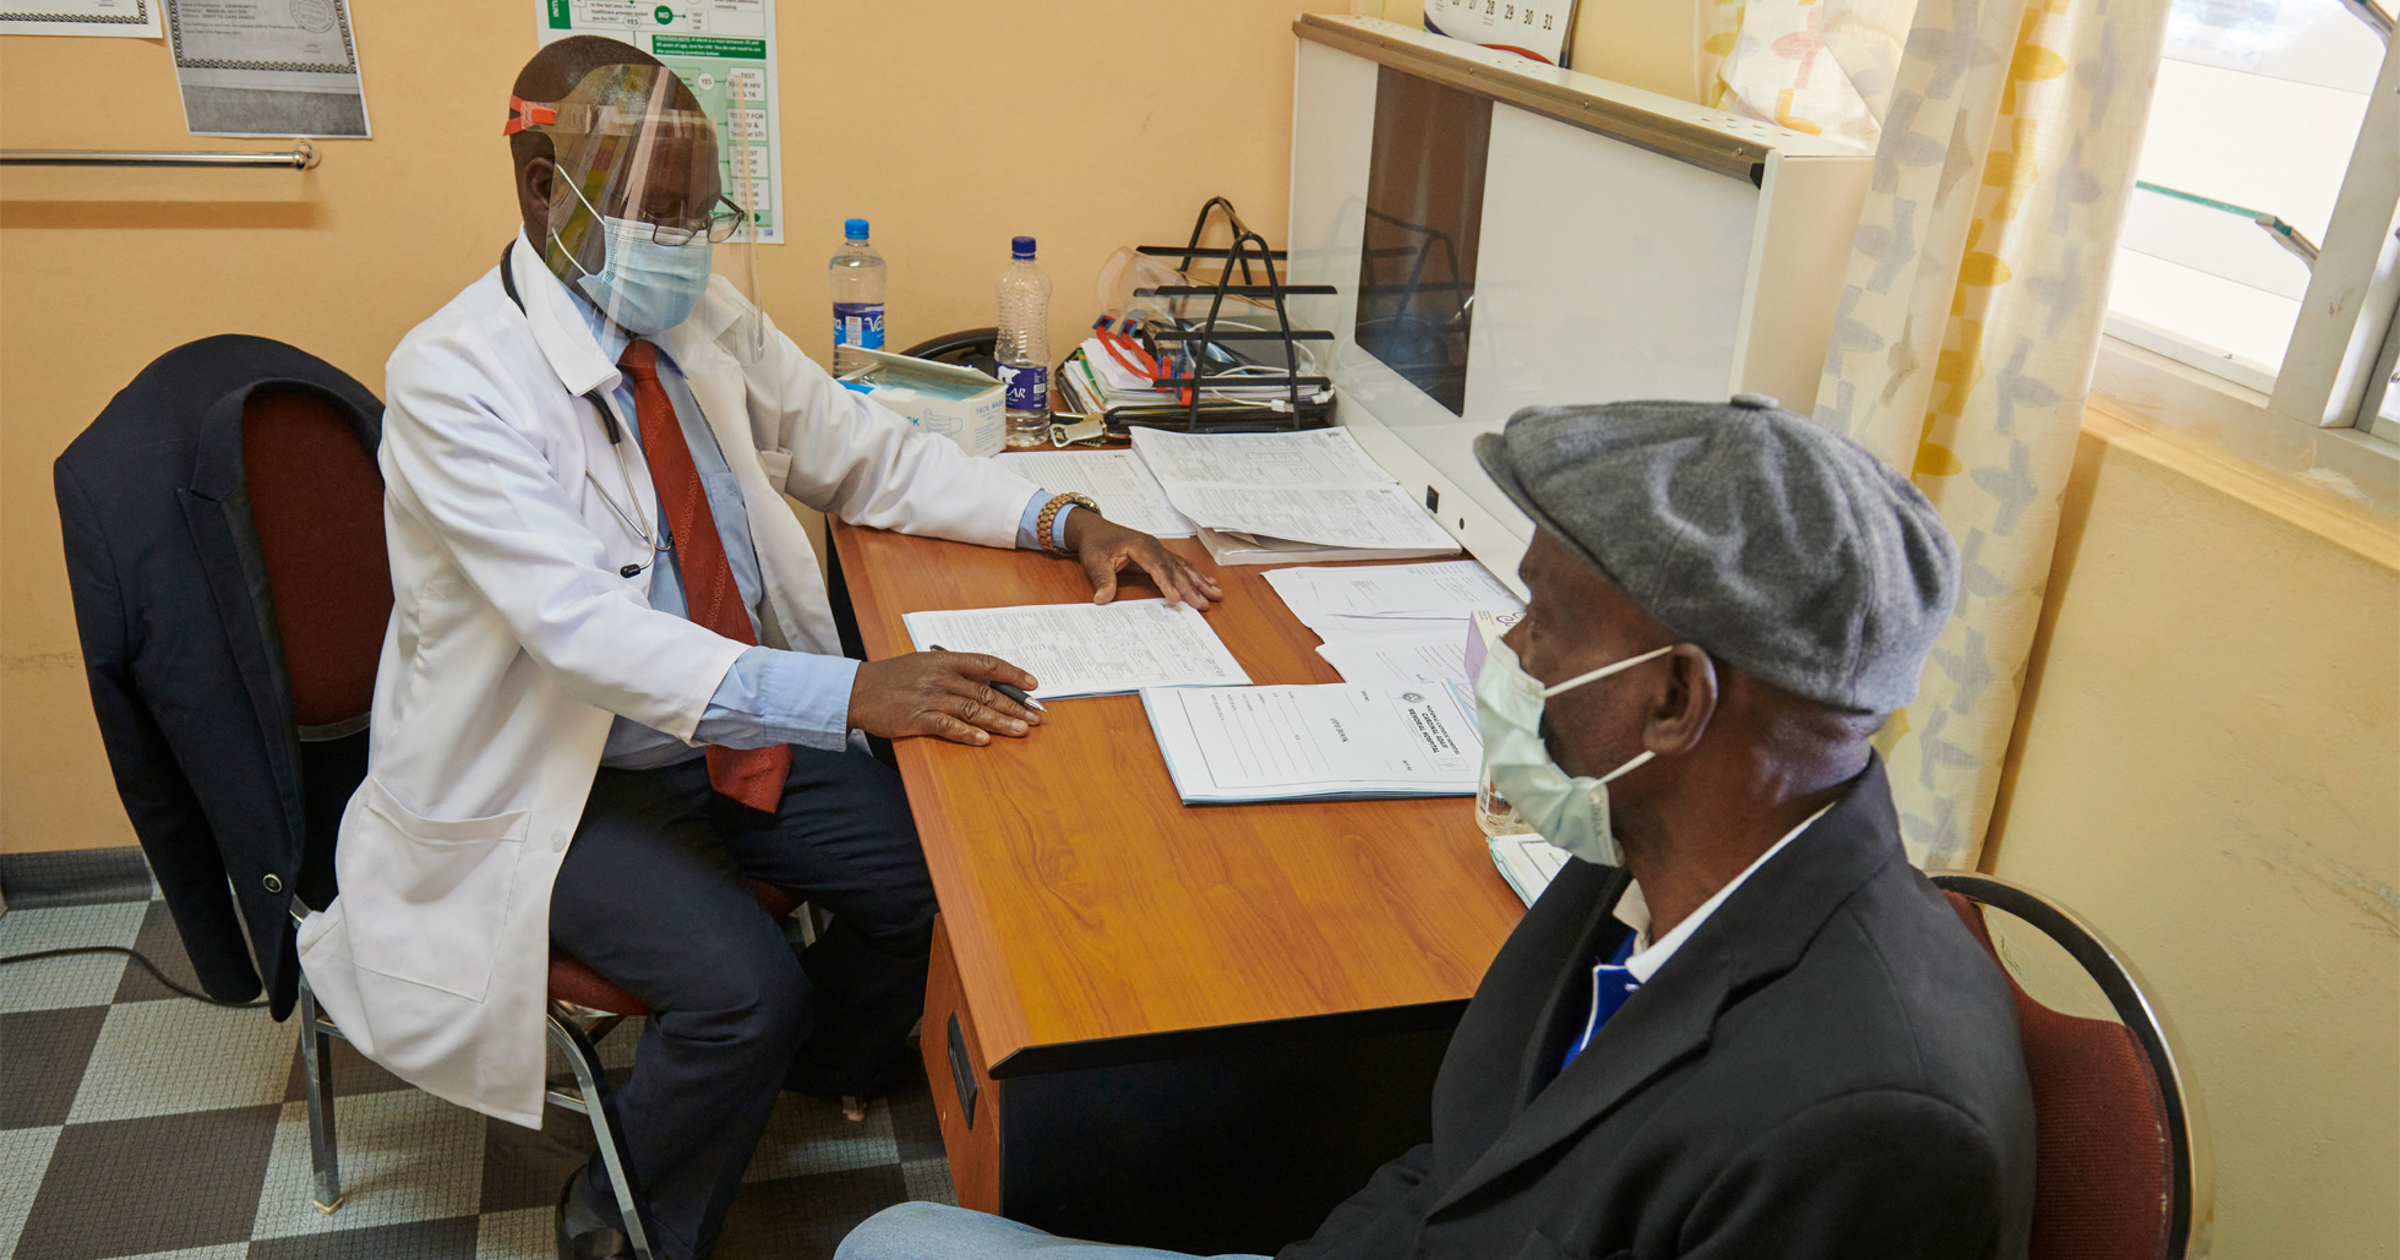 Doctor and patient using Apple PPE for COVID-19 at Zambia clinic